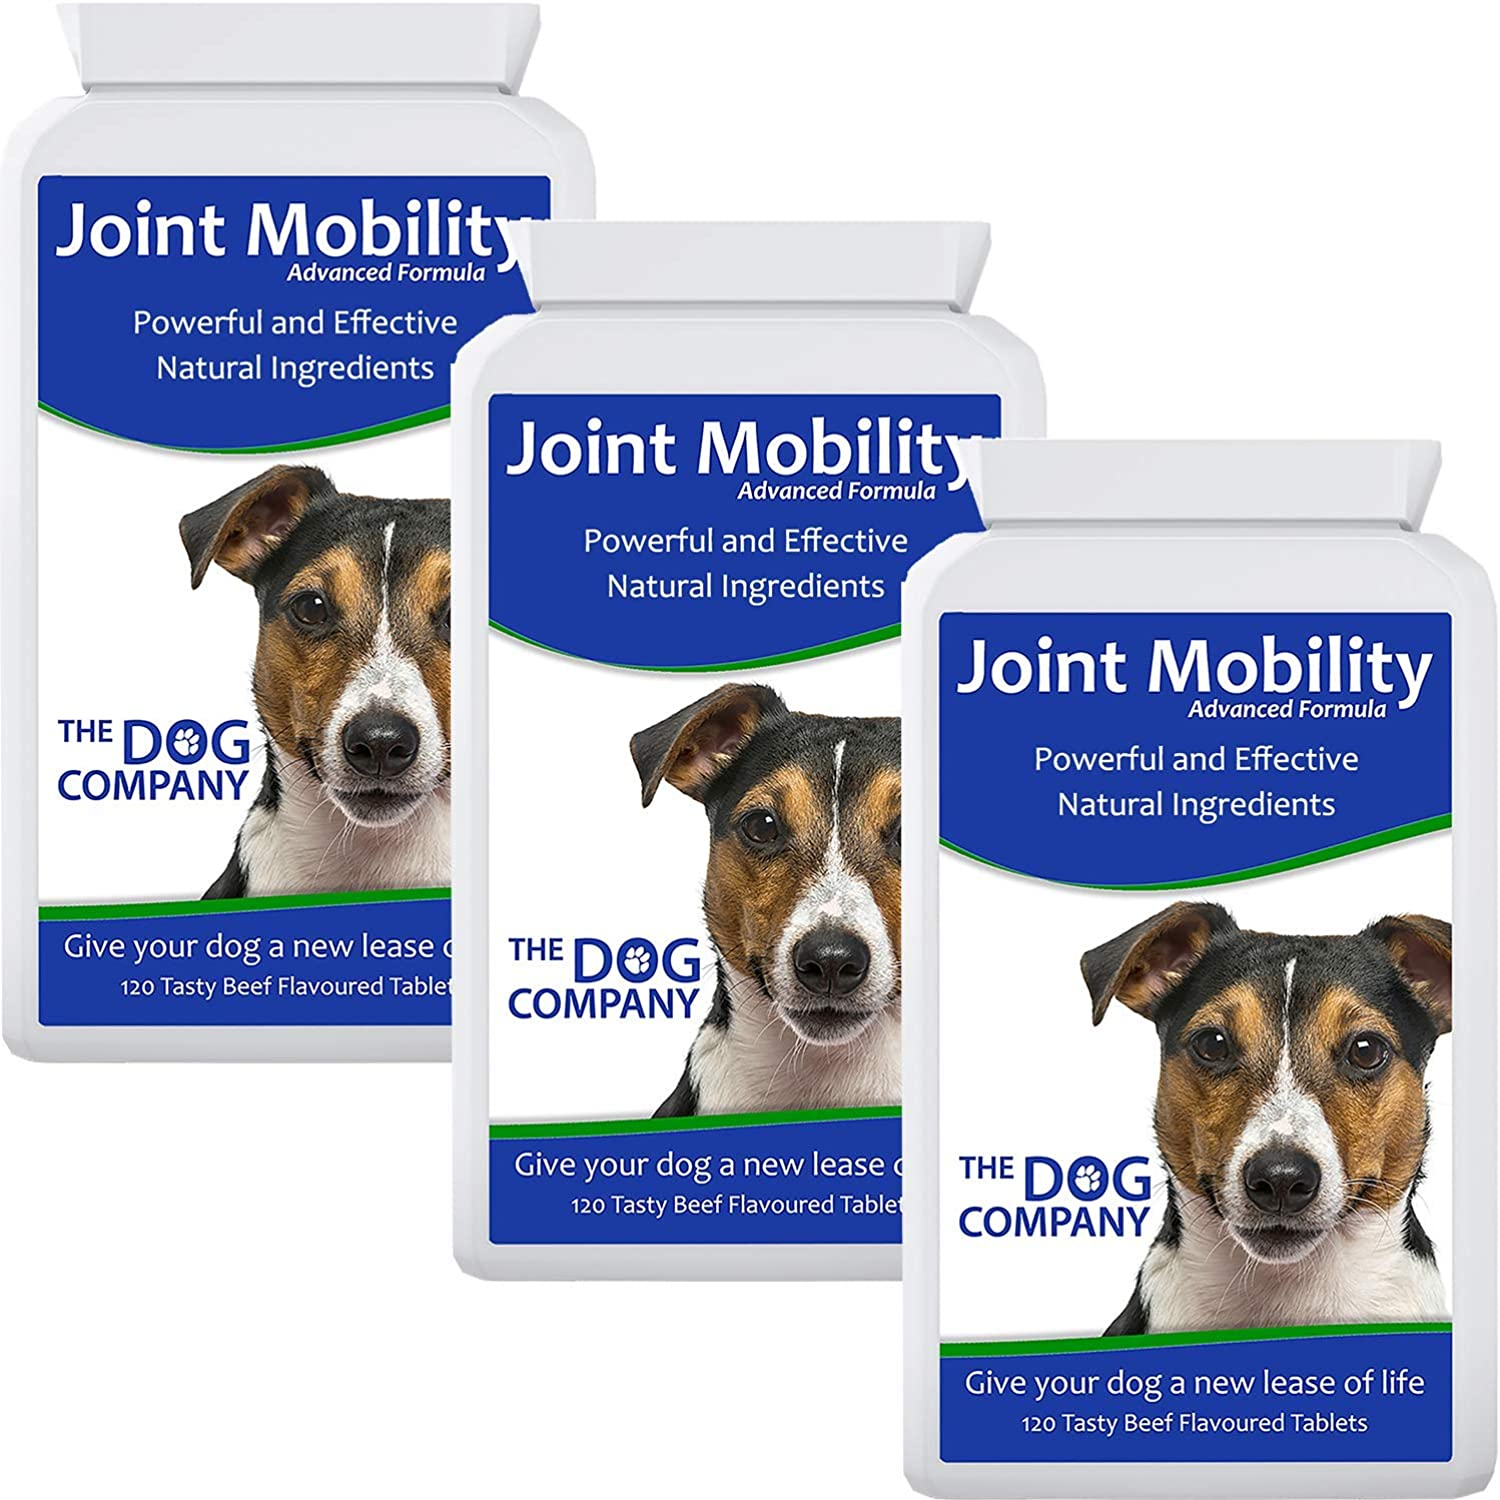 Dog Glucosamine Joint Supplement Tablets   Turmeric & Boswellia Joint Aid for Dogs   Joint Mobility   360 Tablets   Made in the UK